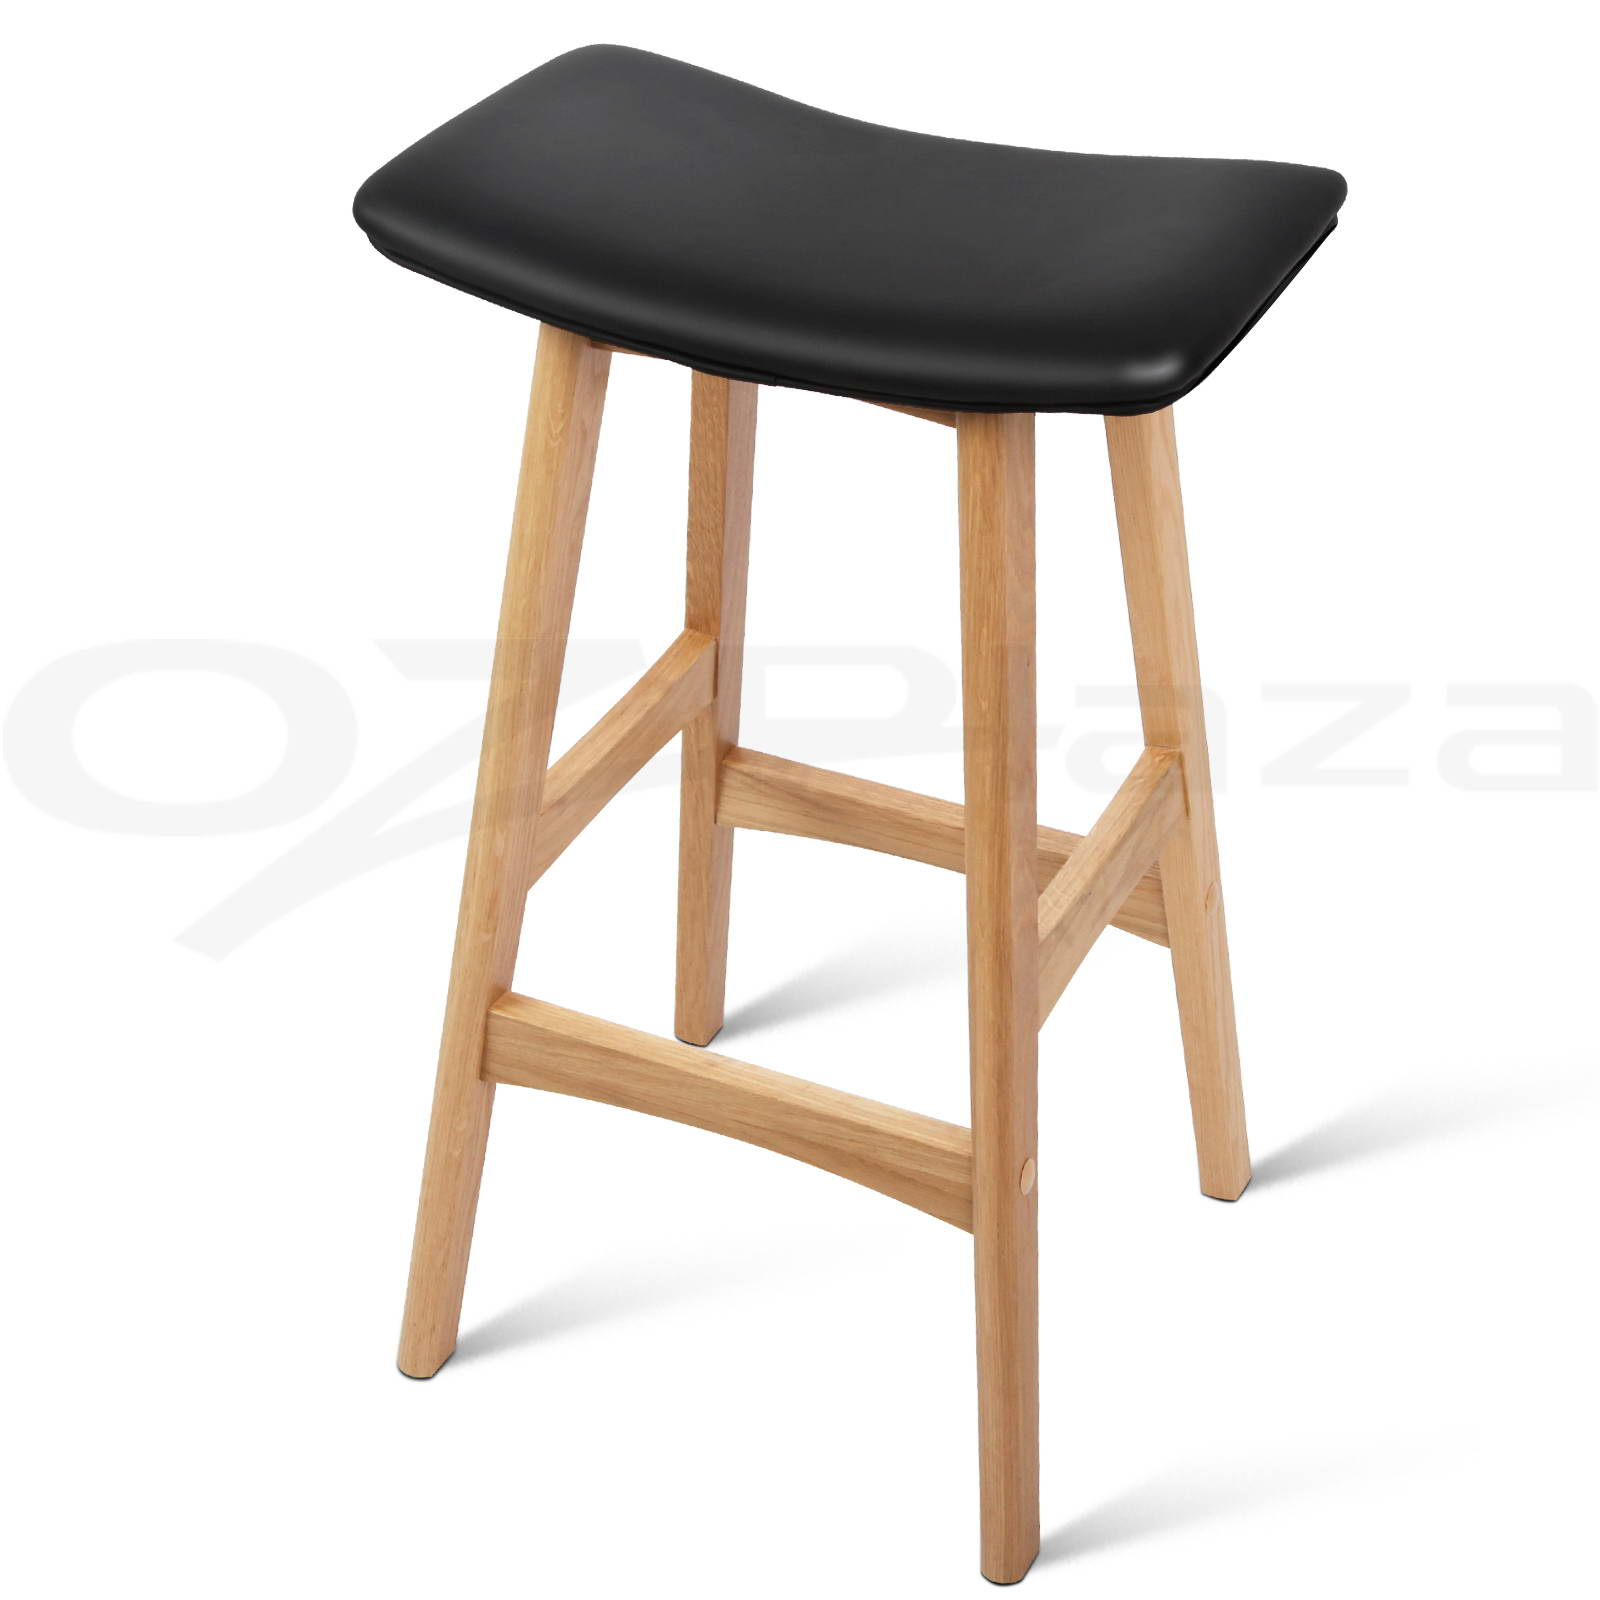 Wooden Kitchen Stools 4x Oak Wood Bar Stools Wooden Barstool Dining Chairs